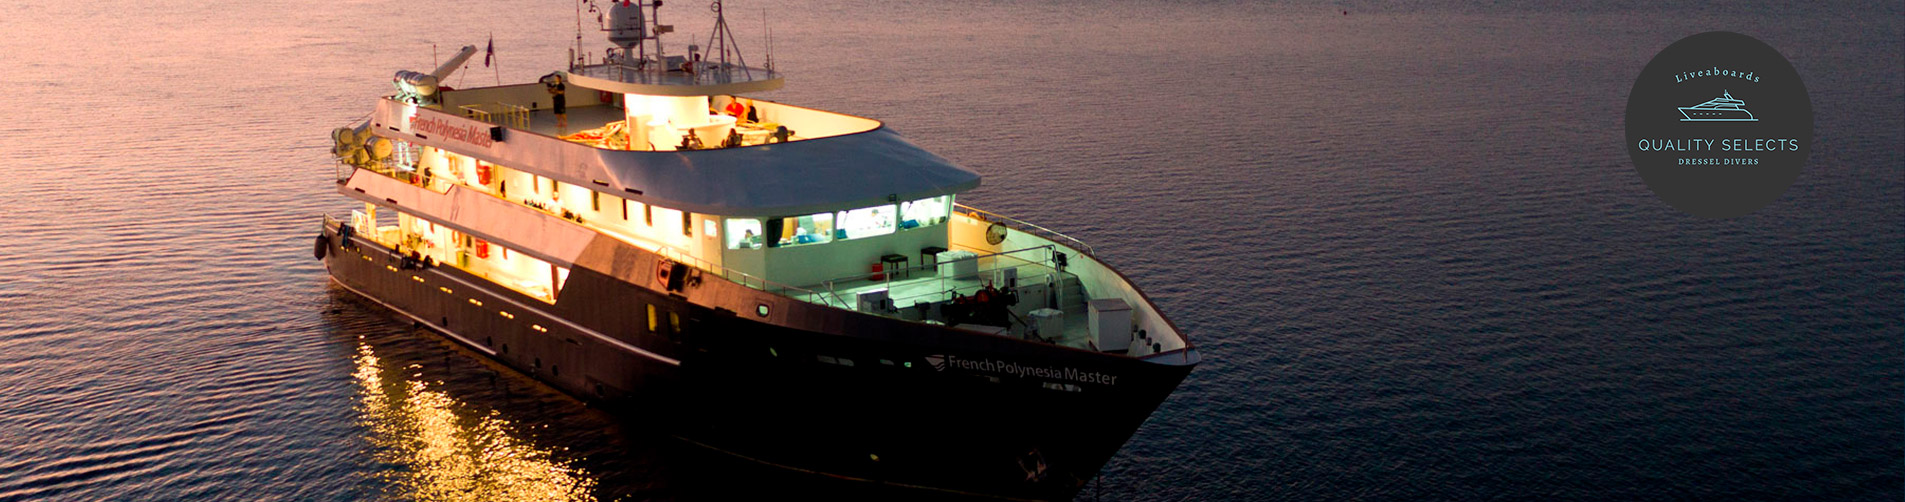 French Polynesia Liveaboard Diving - dusk